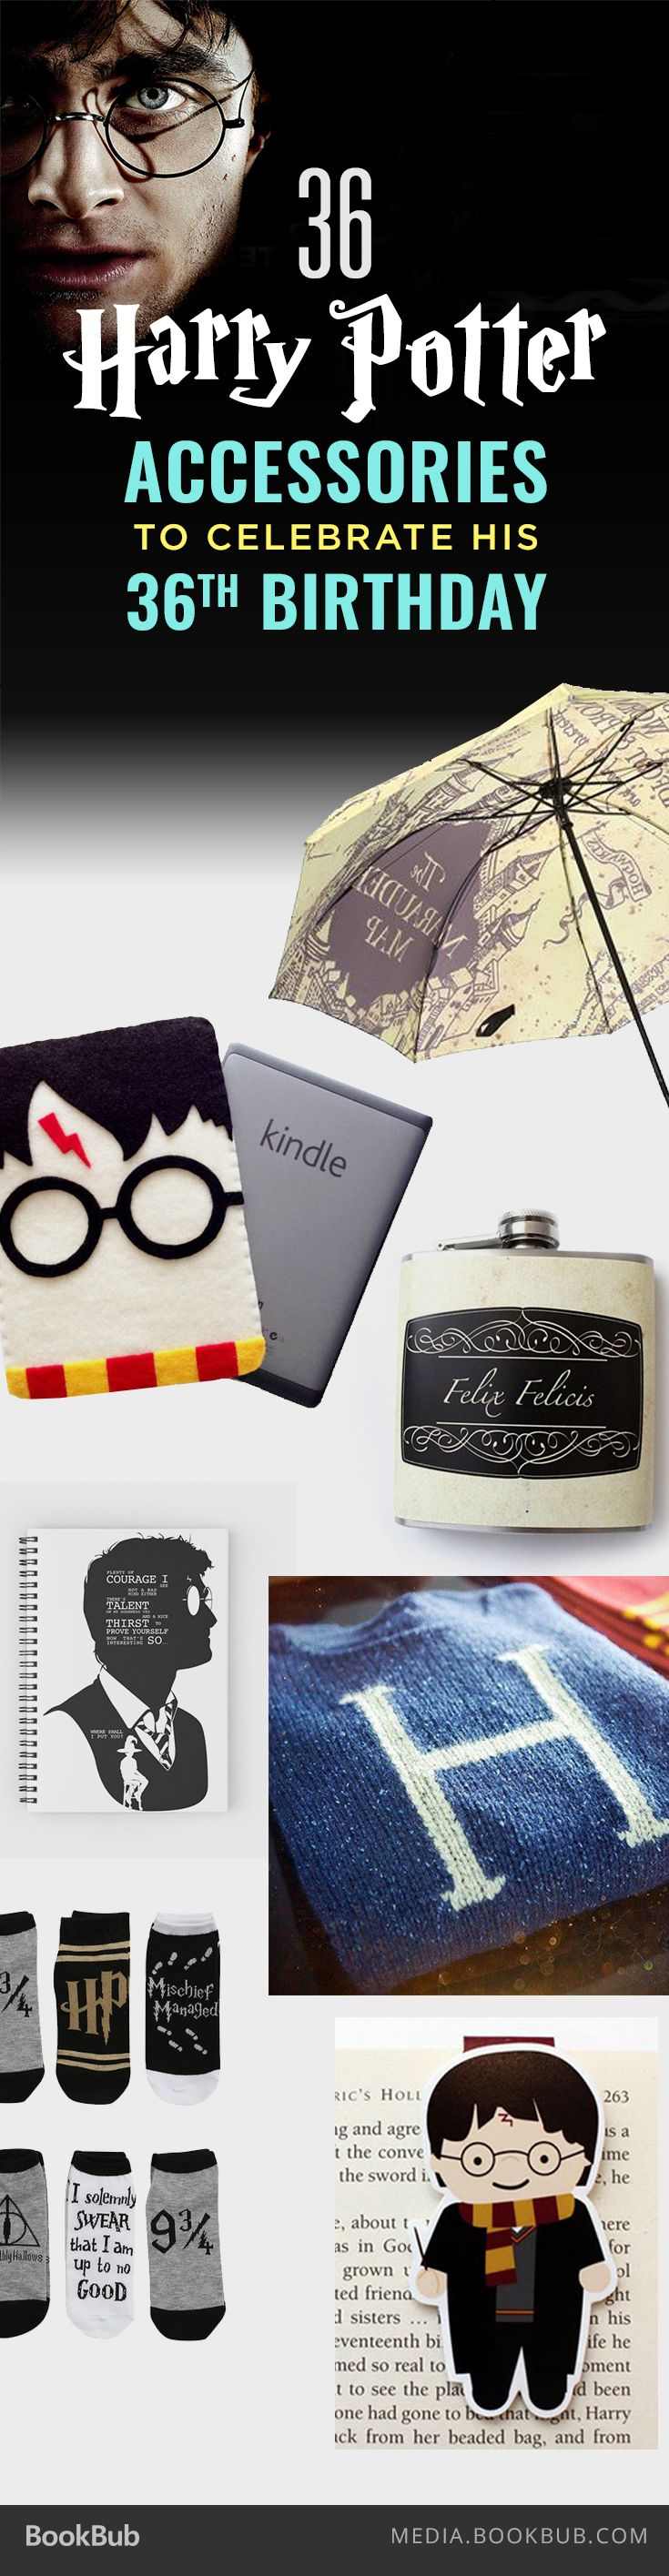 36 Harry Potter accessories for Harry's 36th birthday -- perfect gift ideas for the Potterhead in your life!